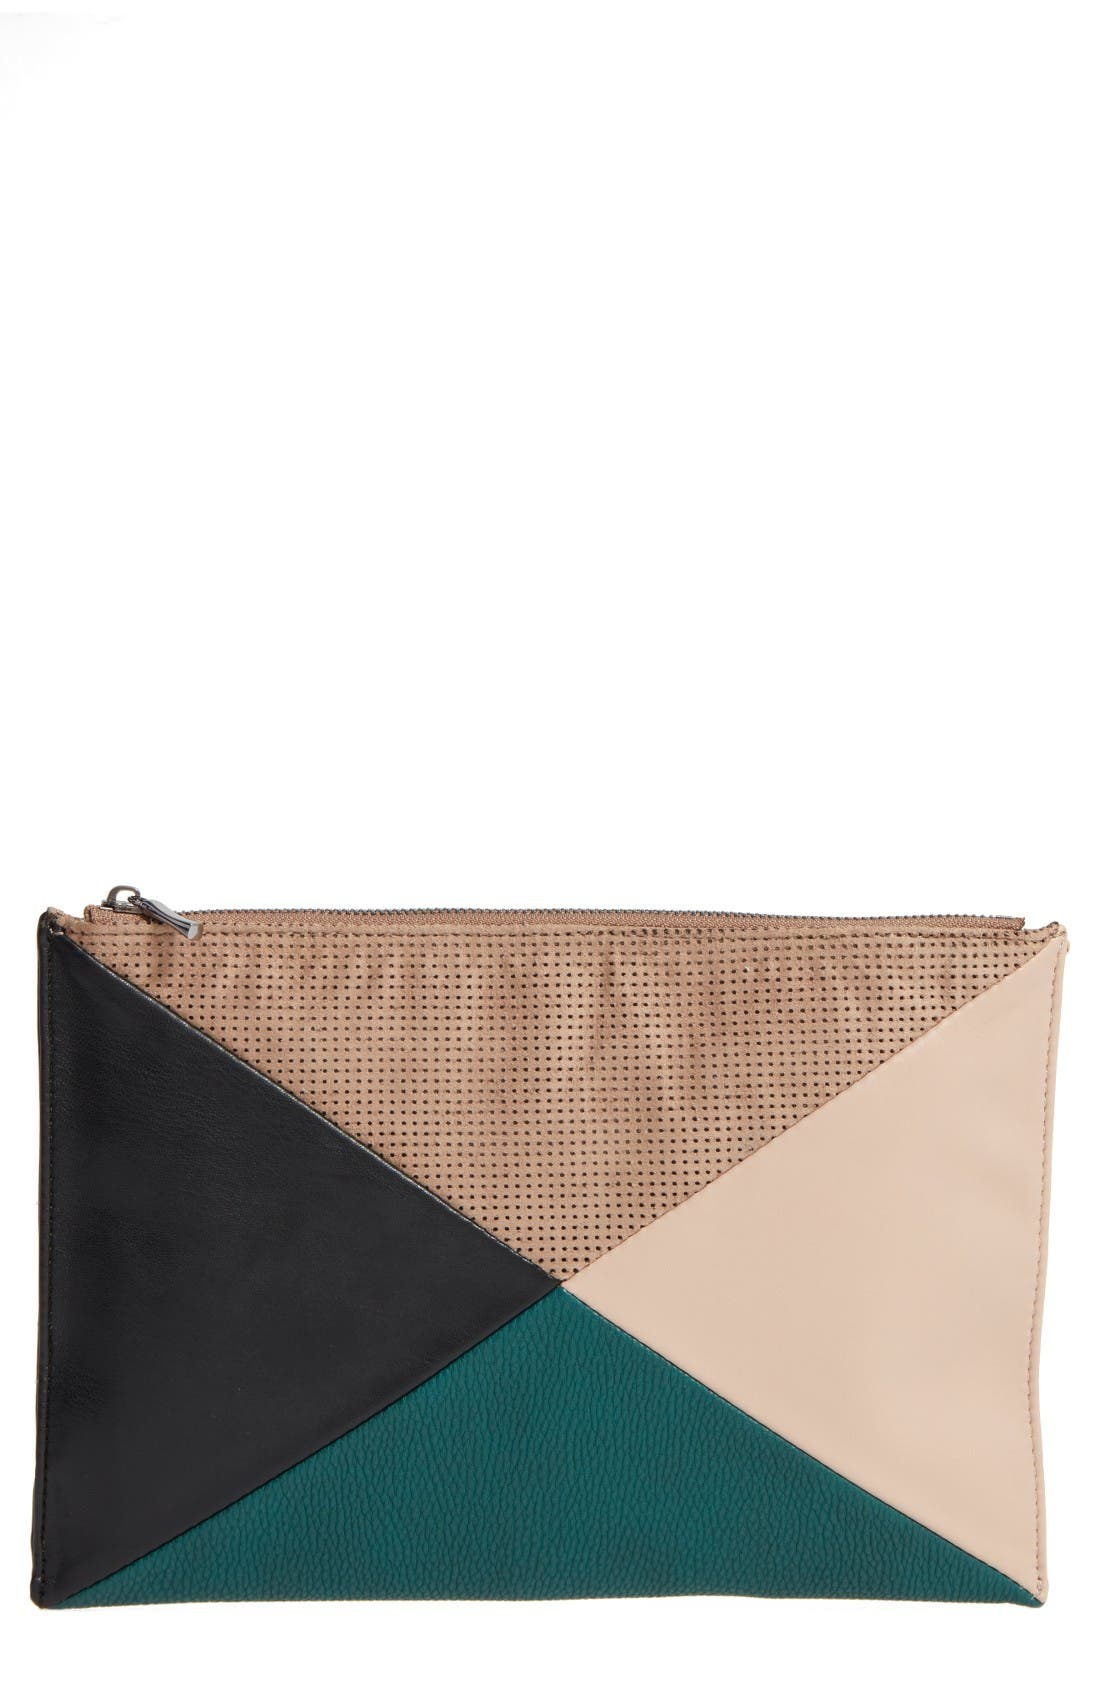 Main Image - Sole Society Steph Patchwork Clutch